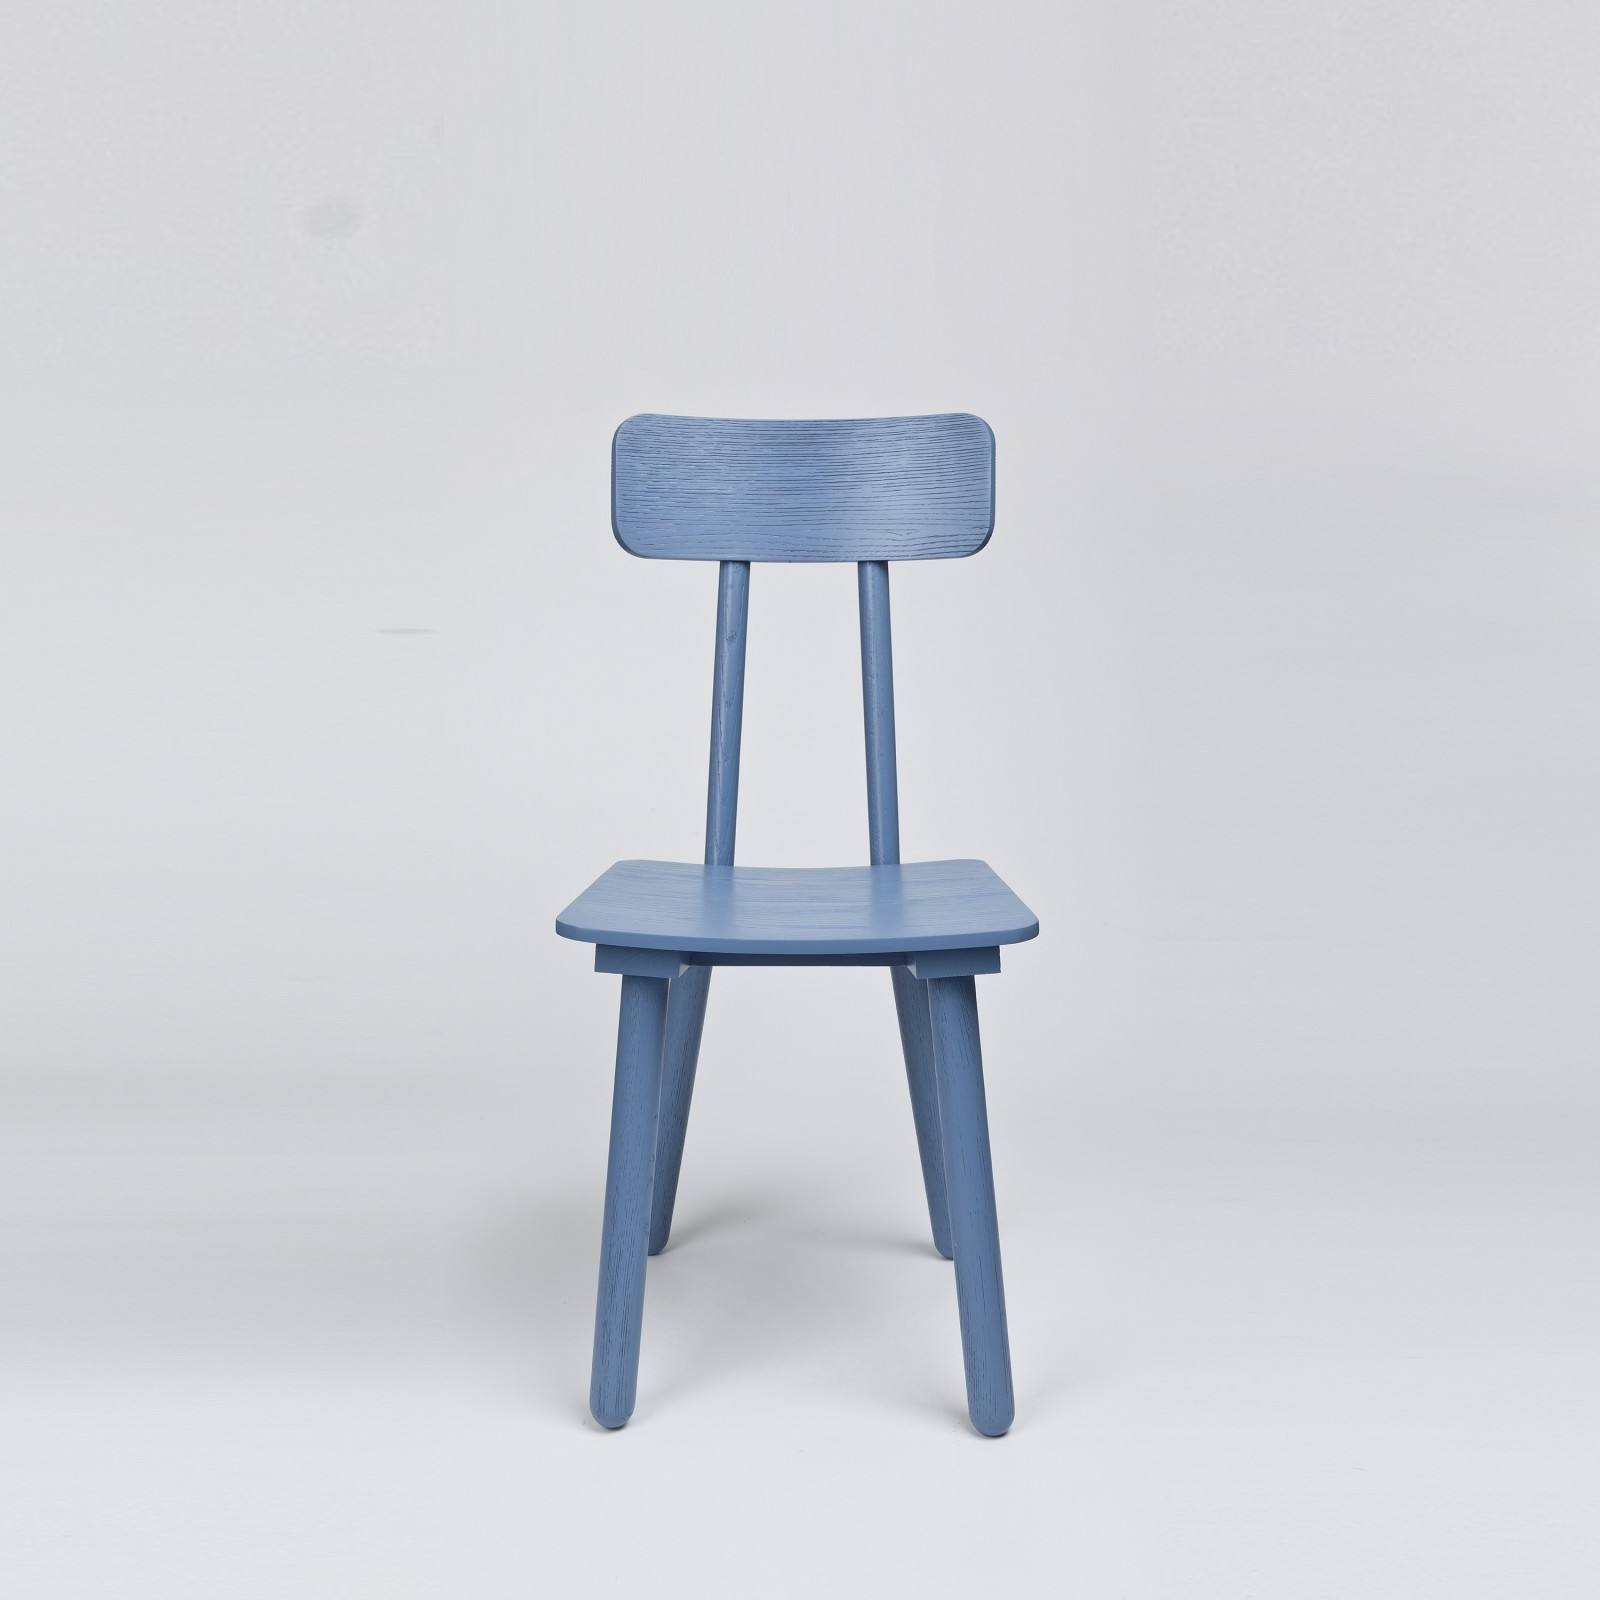 Another Chair Pigeon Blue